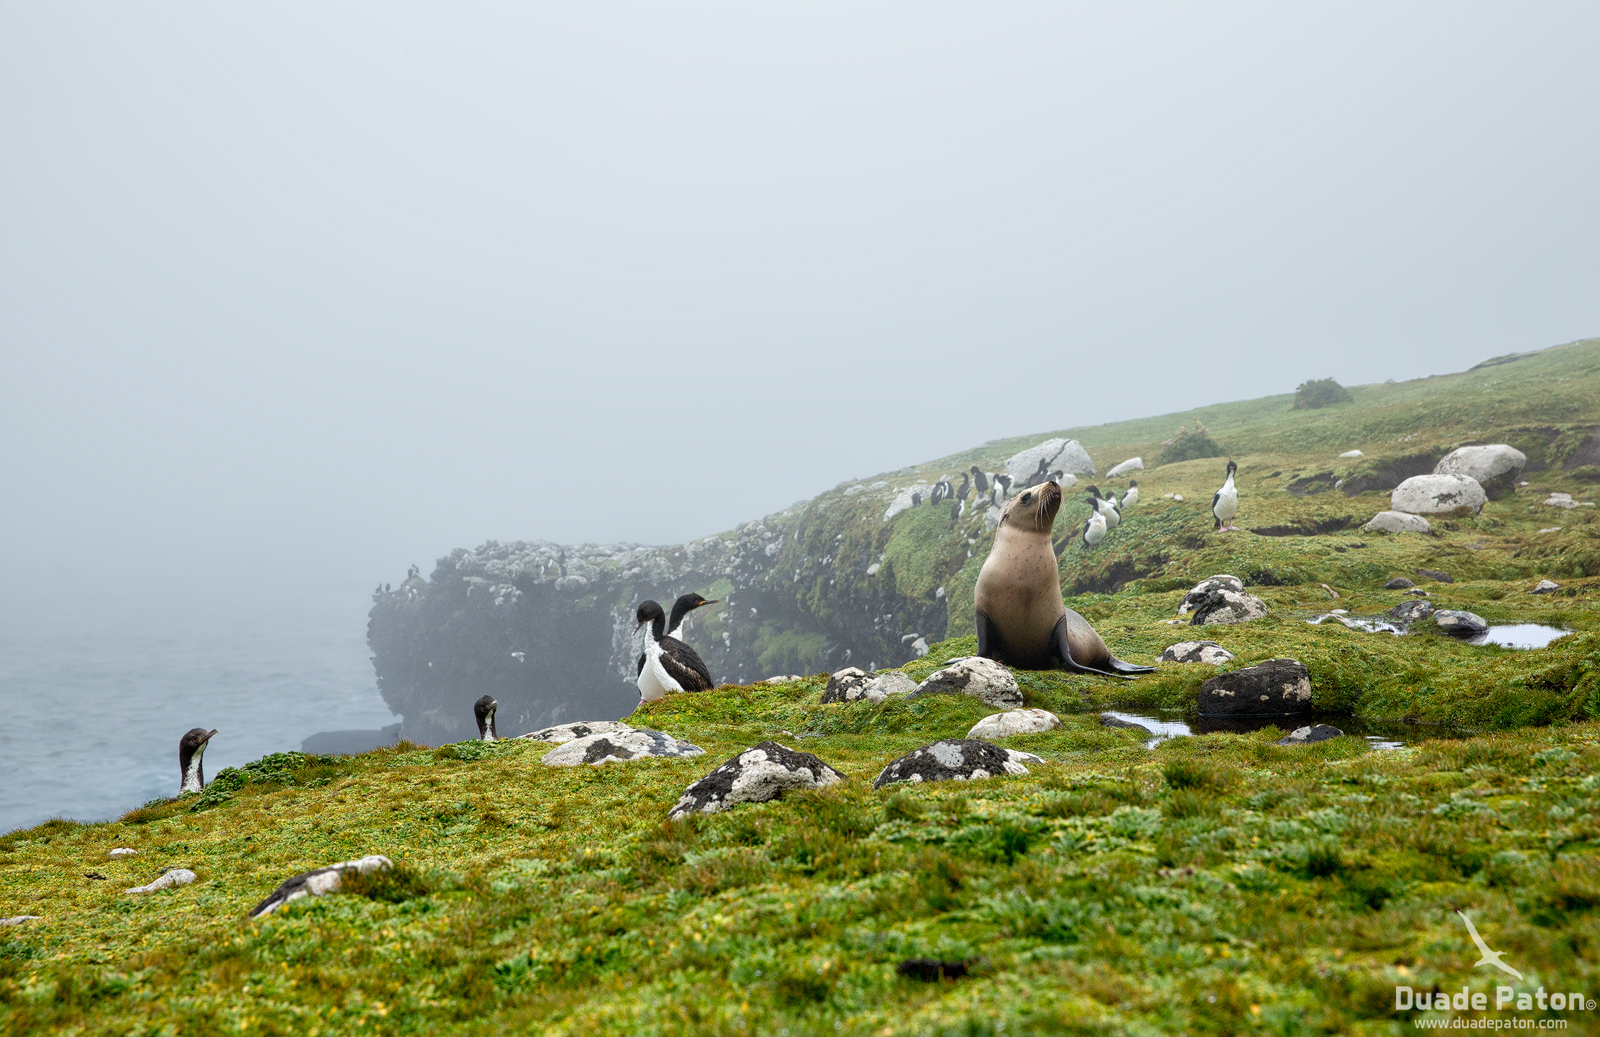 Auckland Island Shags with Hooker's sea lion pup